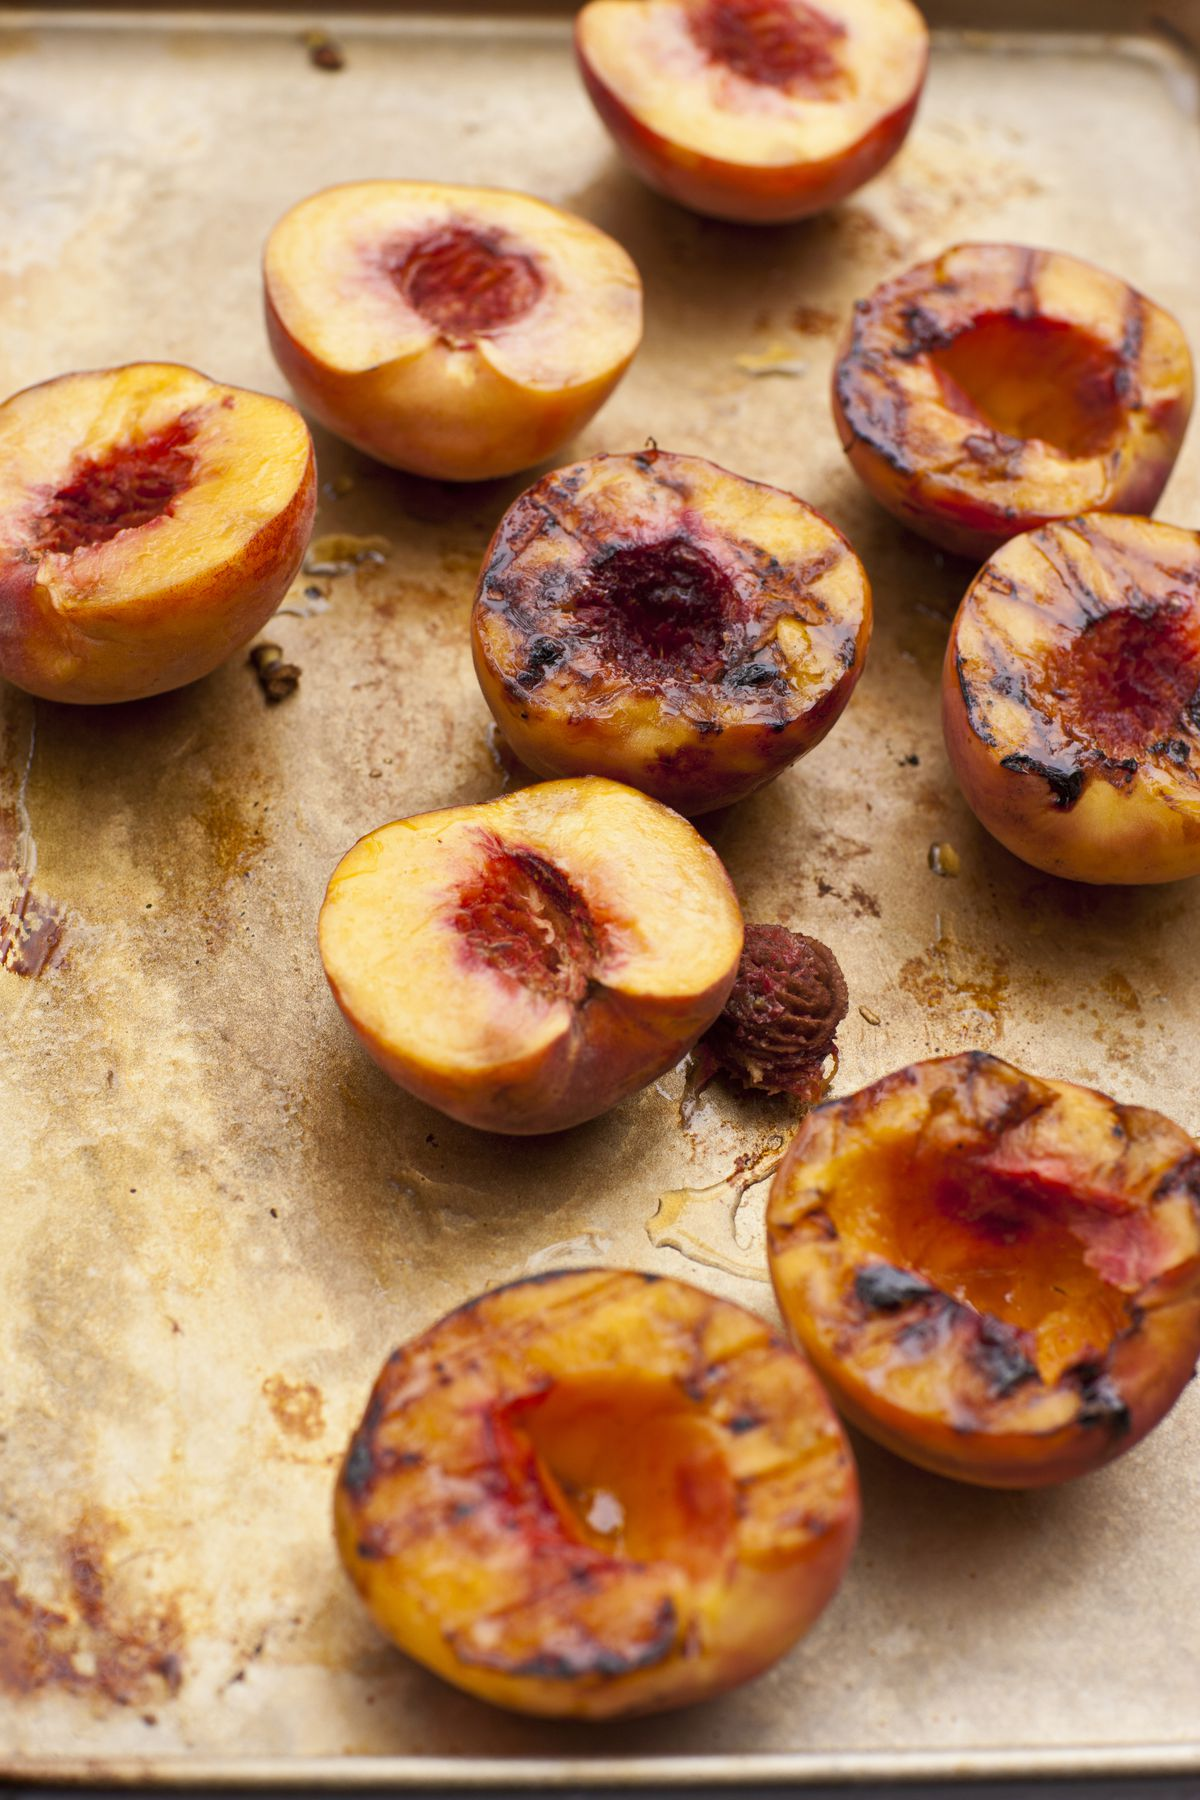 Several grilled peaches sit cut-side up on a baking tray, with grill marks visible on some of the peaches.